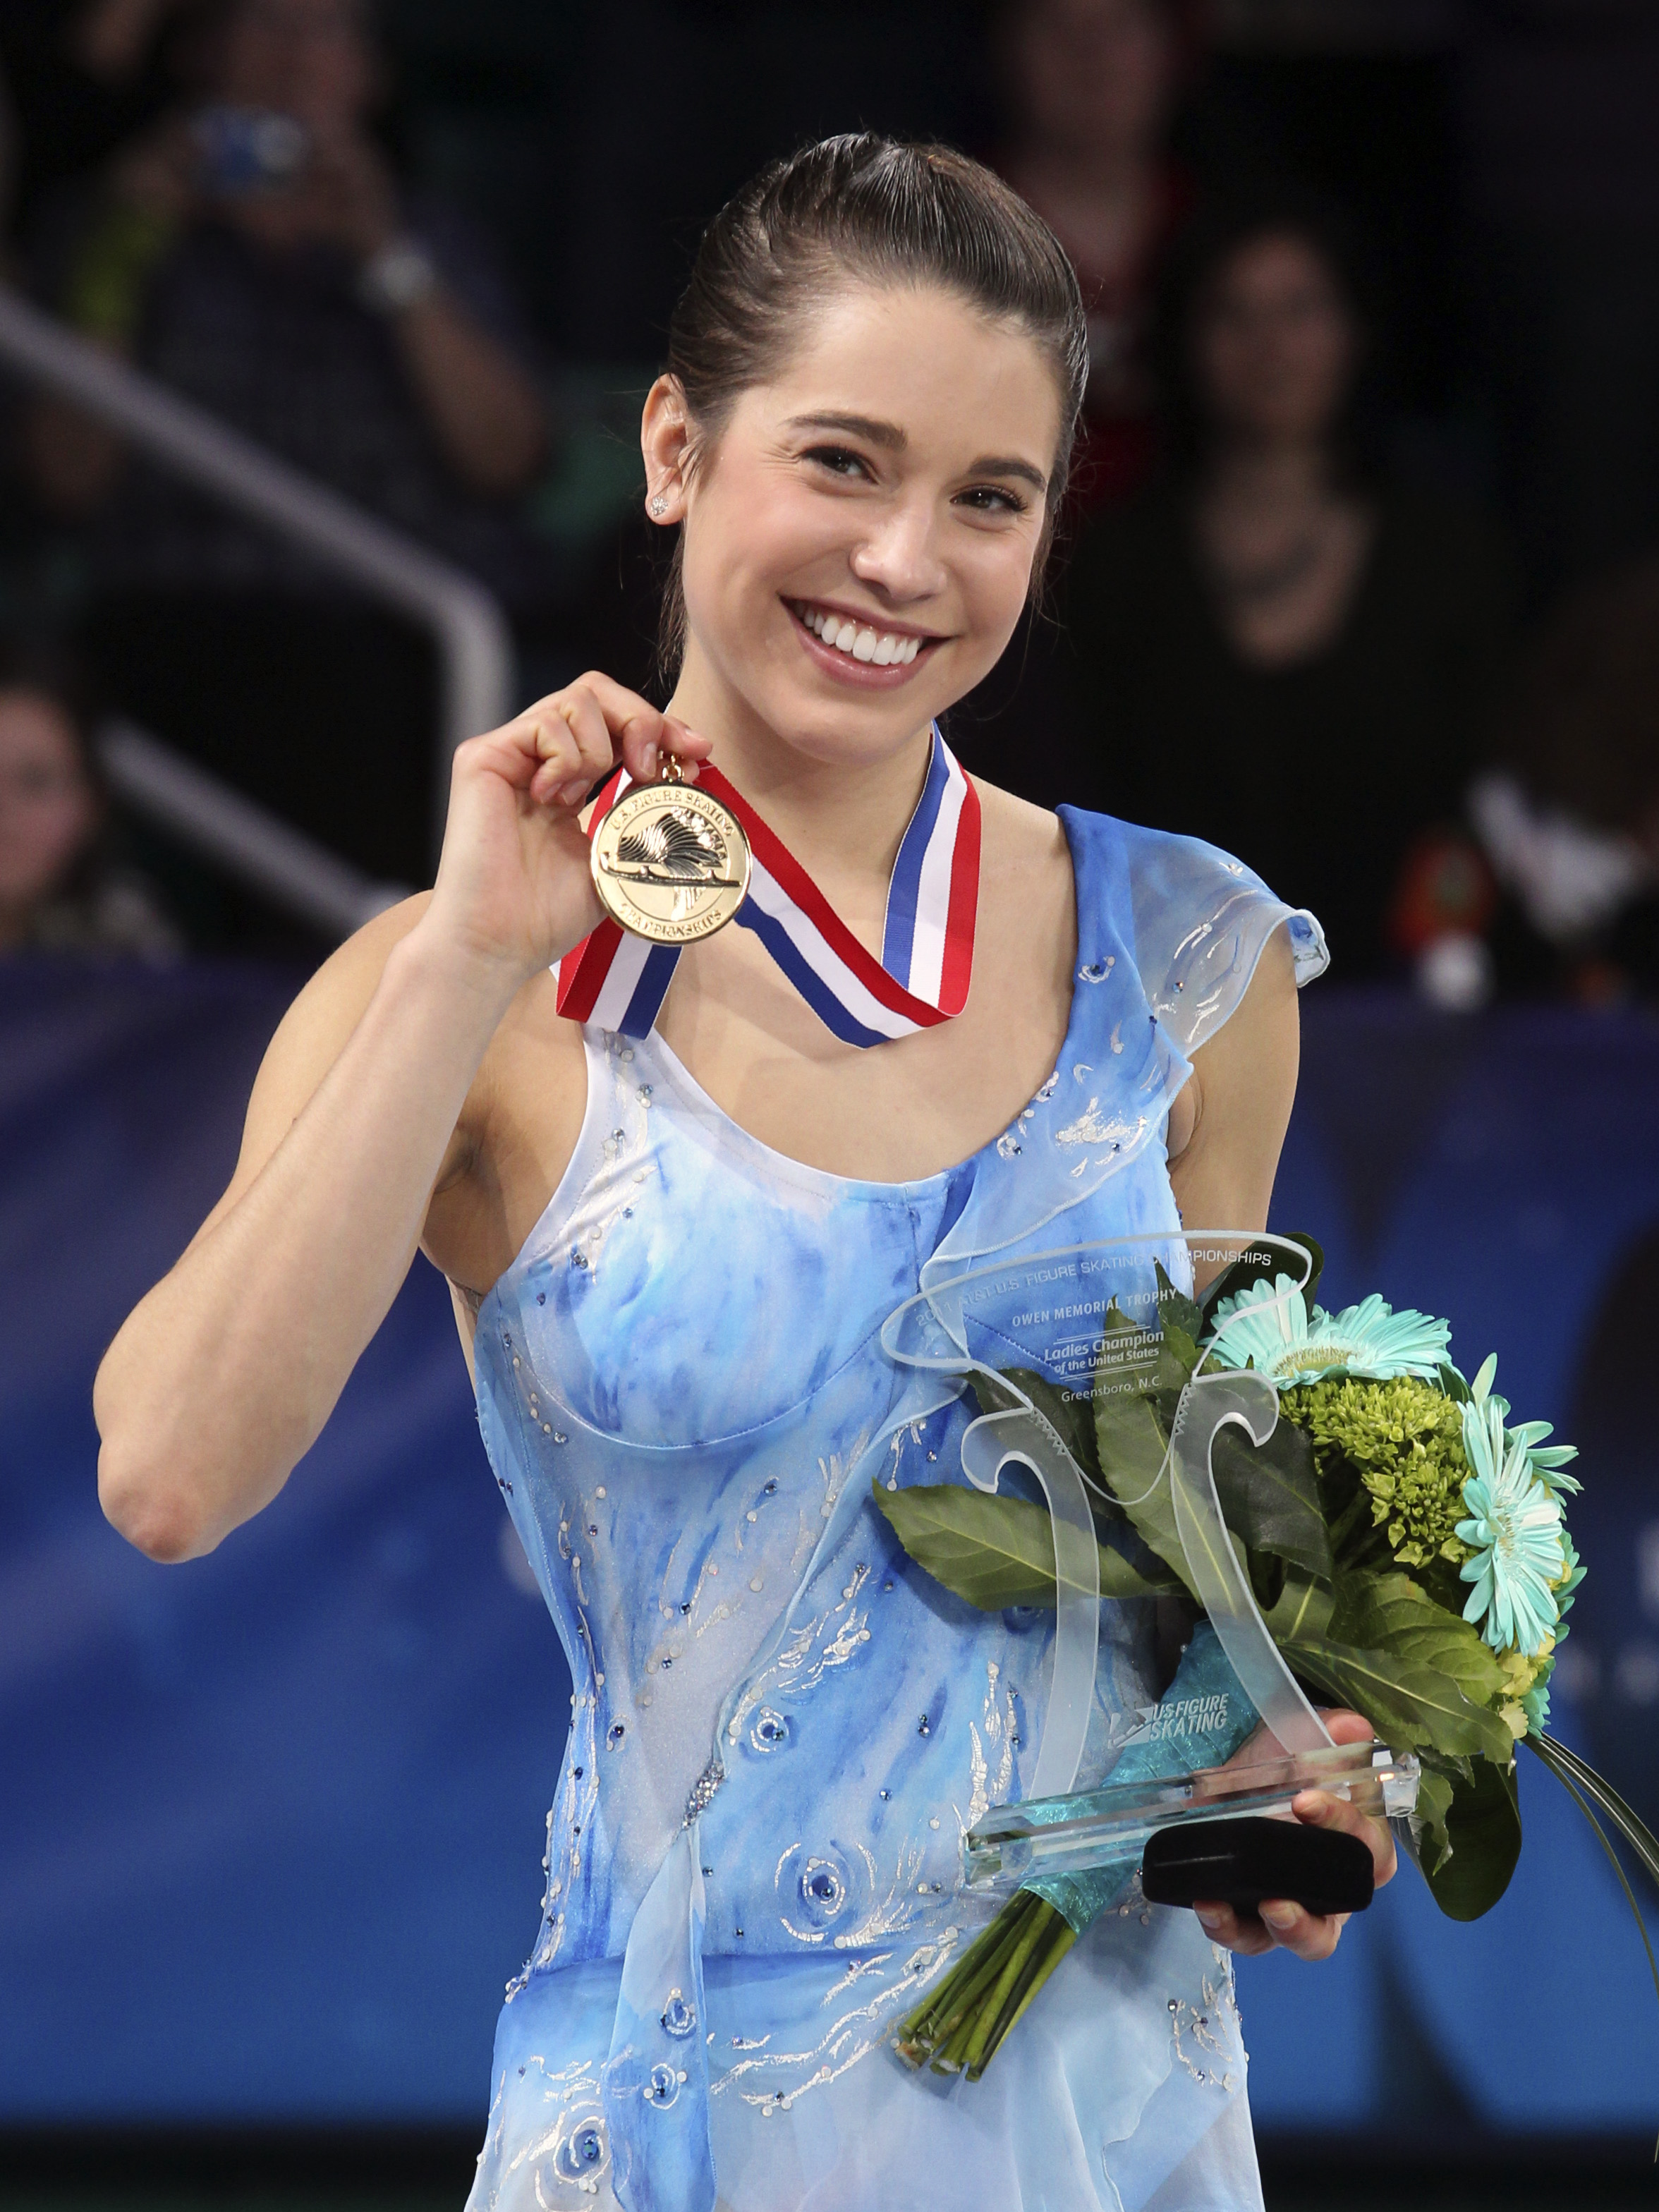 Czisny looks for 3rd US figure skating title  The Blade